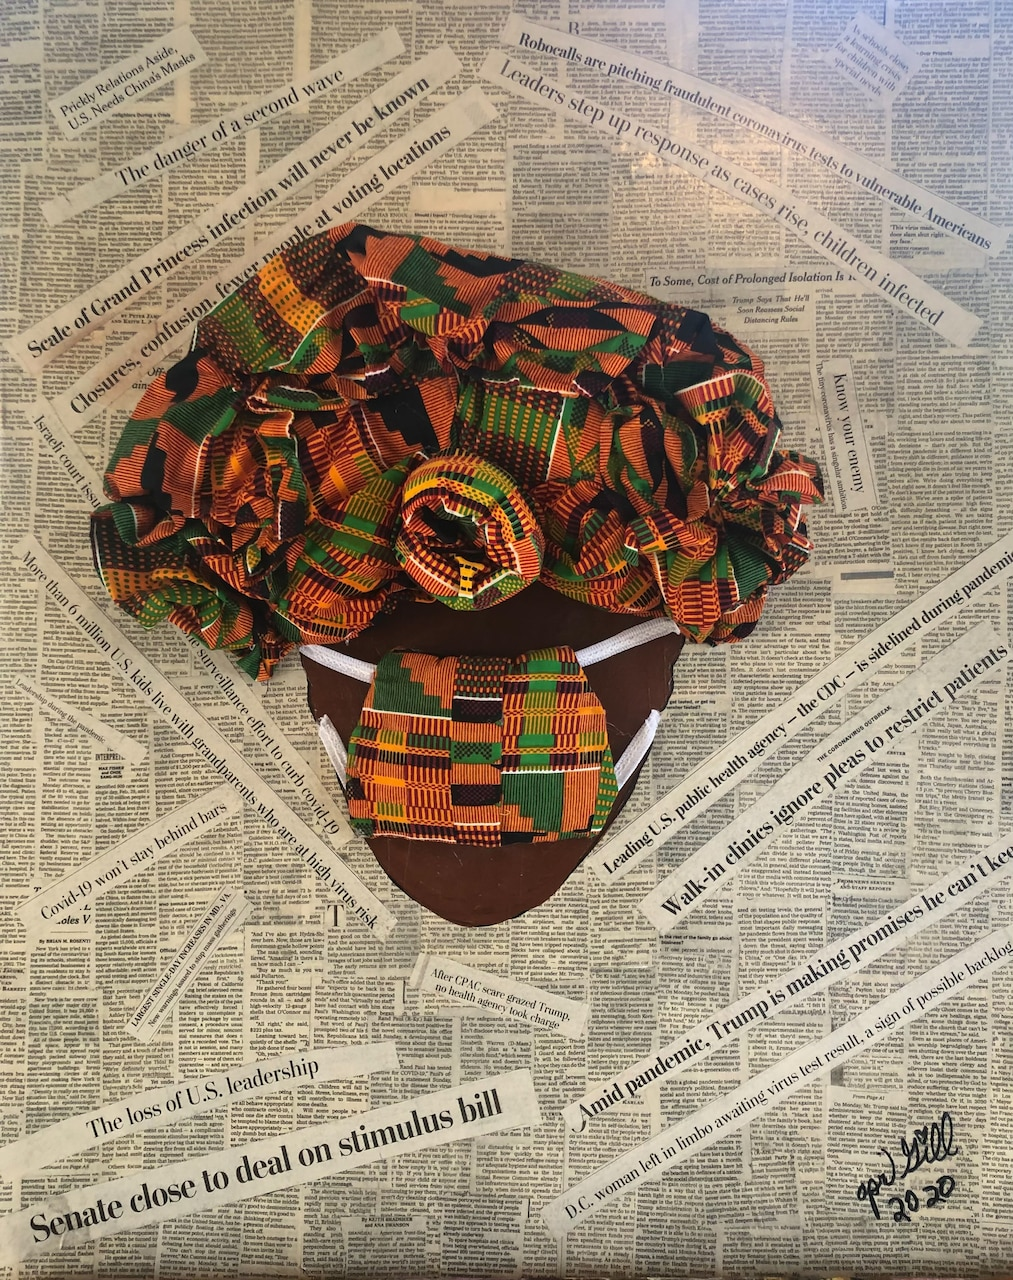 An African-inspired fabric headwrap and mask sits atop a mashup of newspaper articles and headlines.